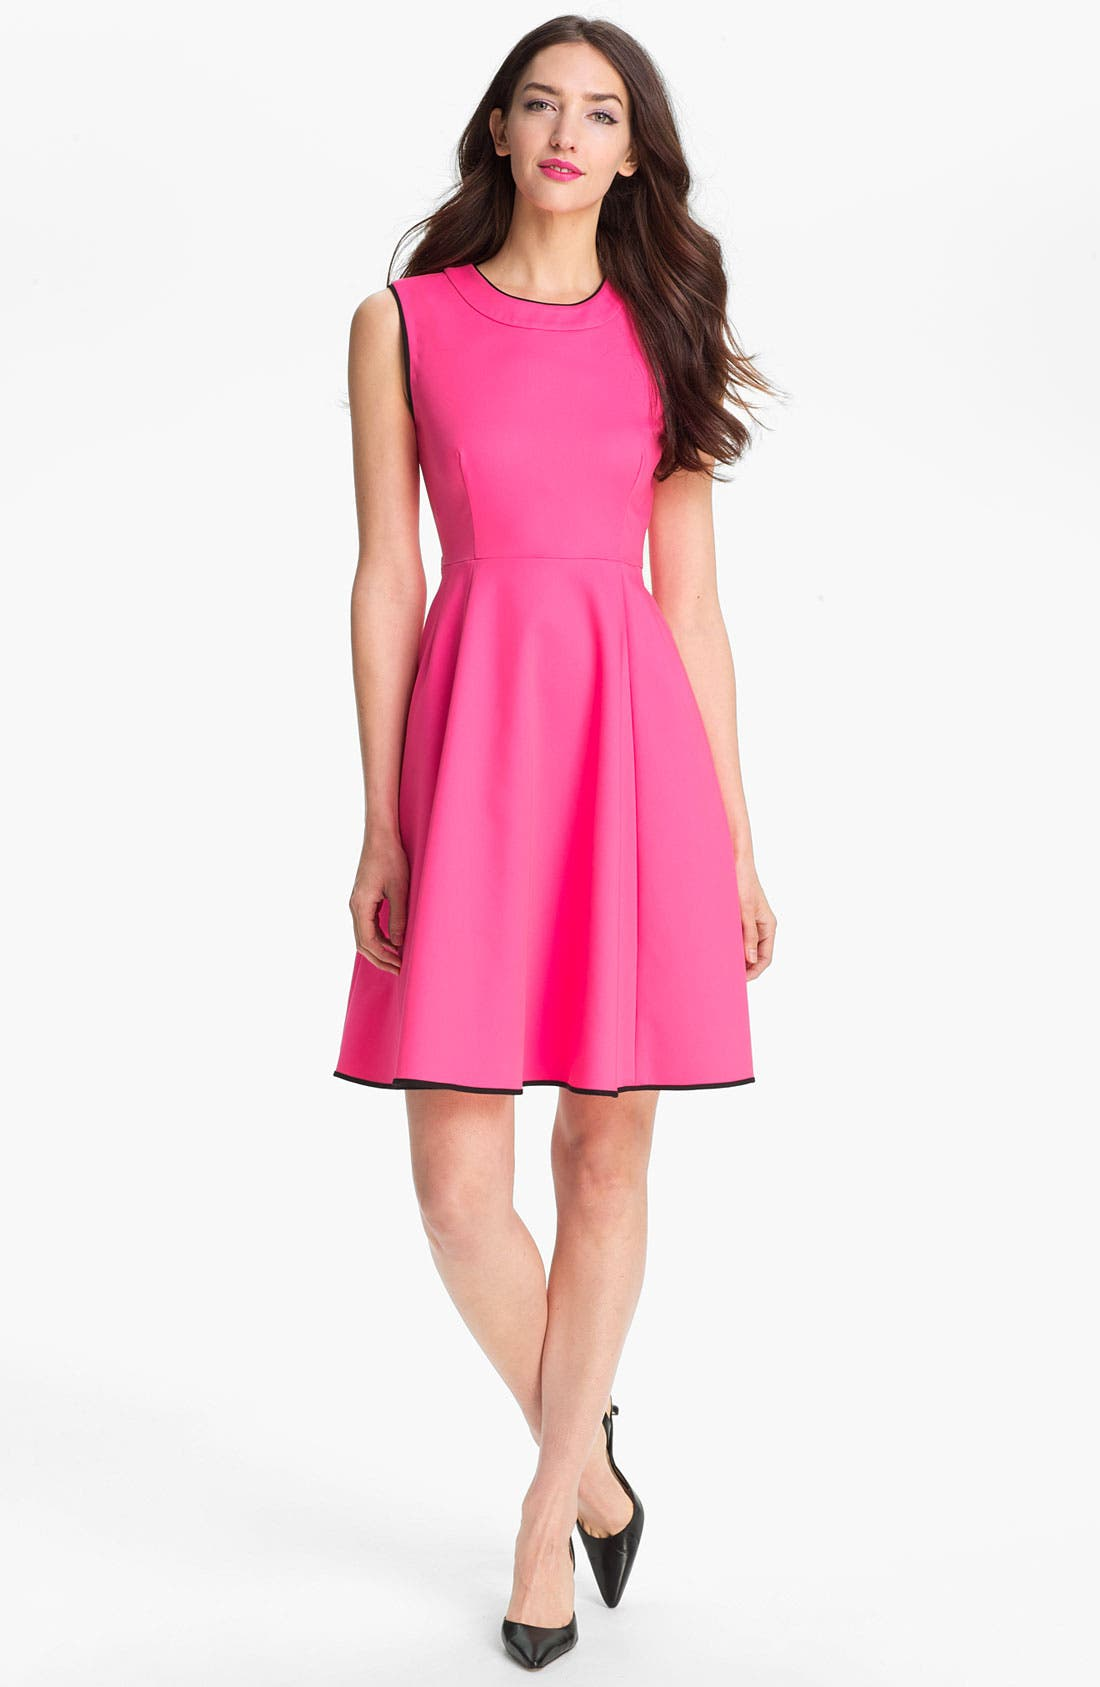 Alternate Image 1 Selected - kate spade new york 'carol' fit & flare dress